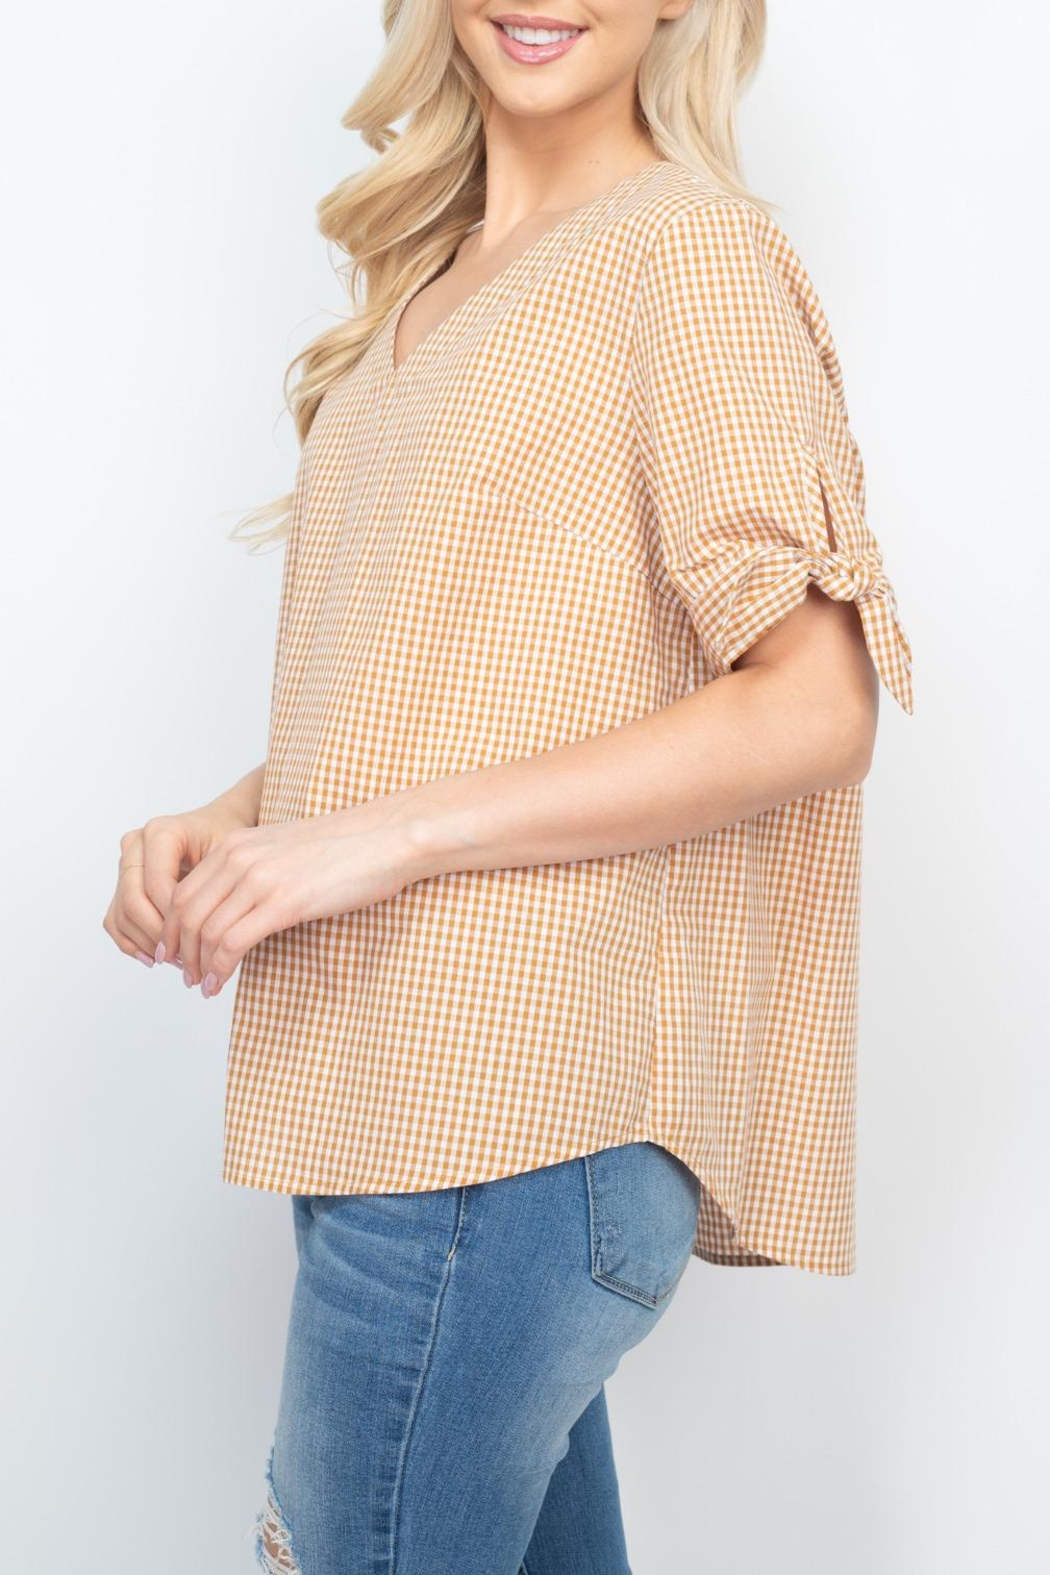 Riah Fashion Mary-Gold-Top - Side Cropped Image